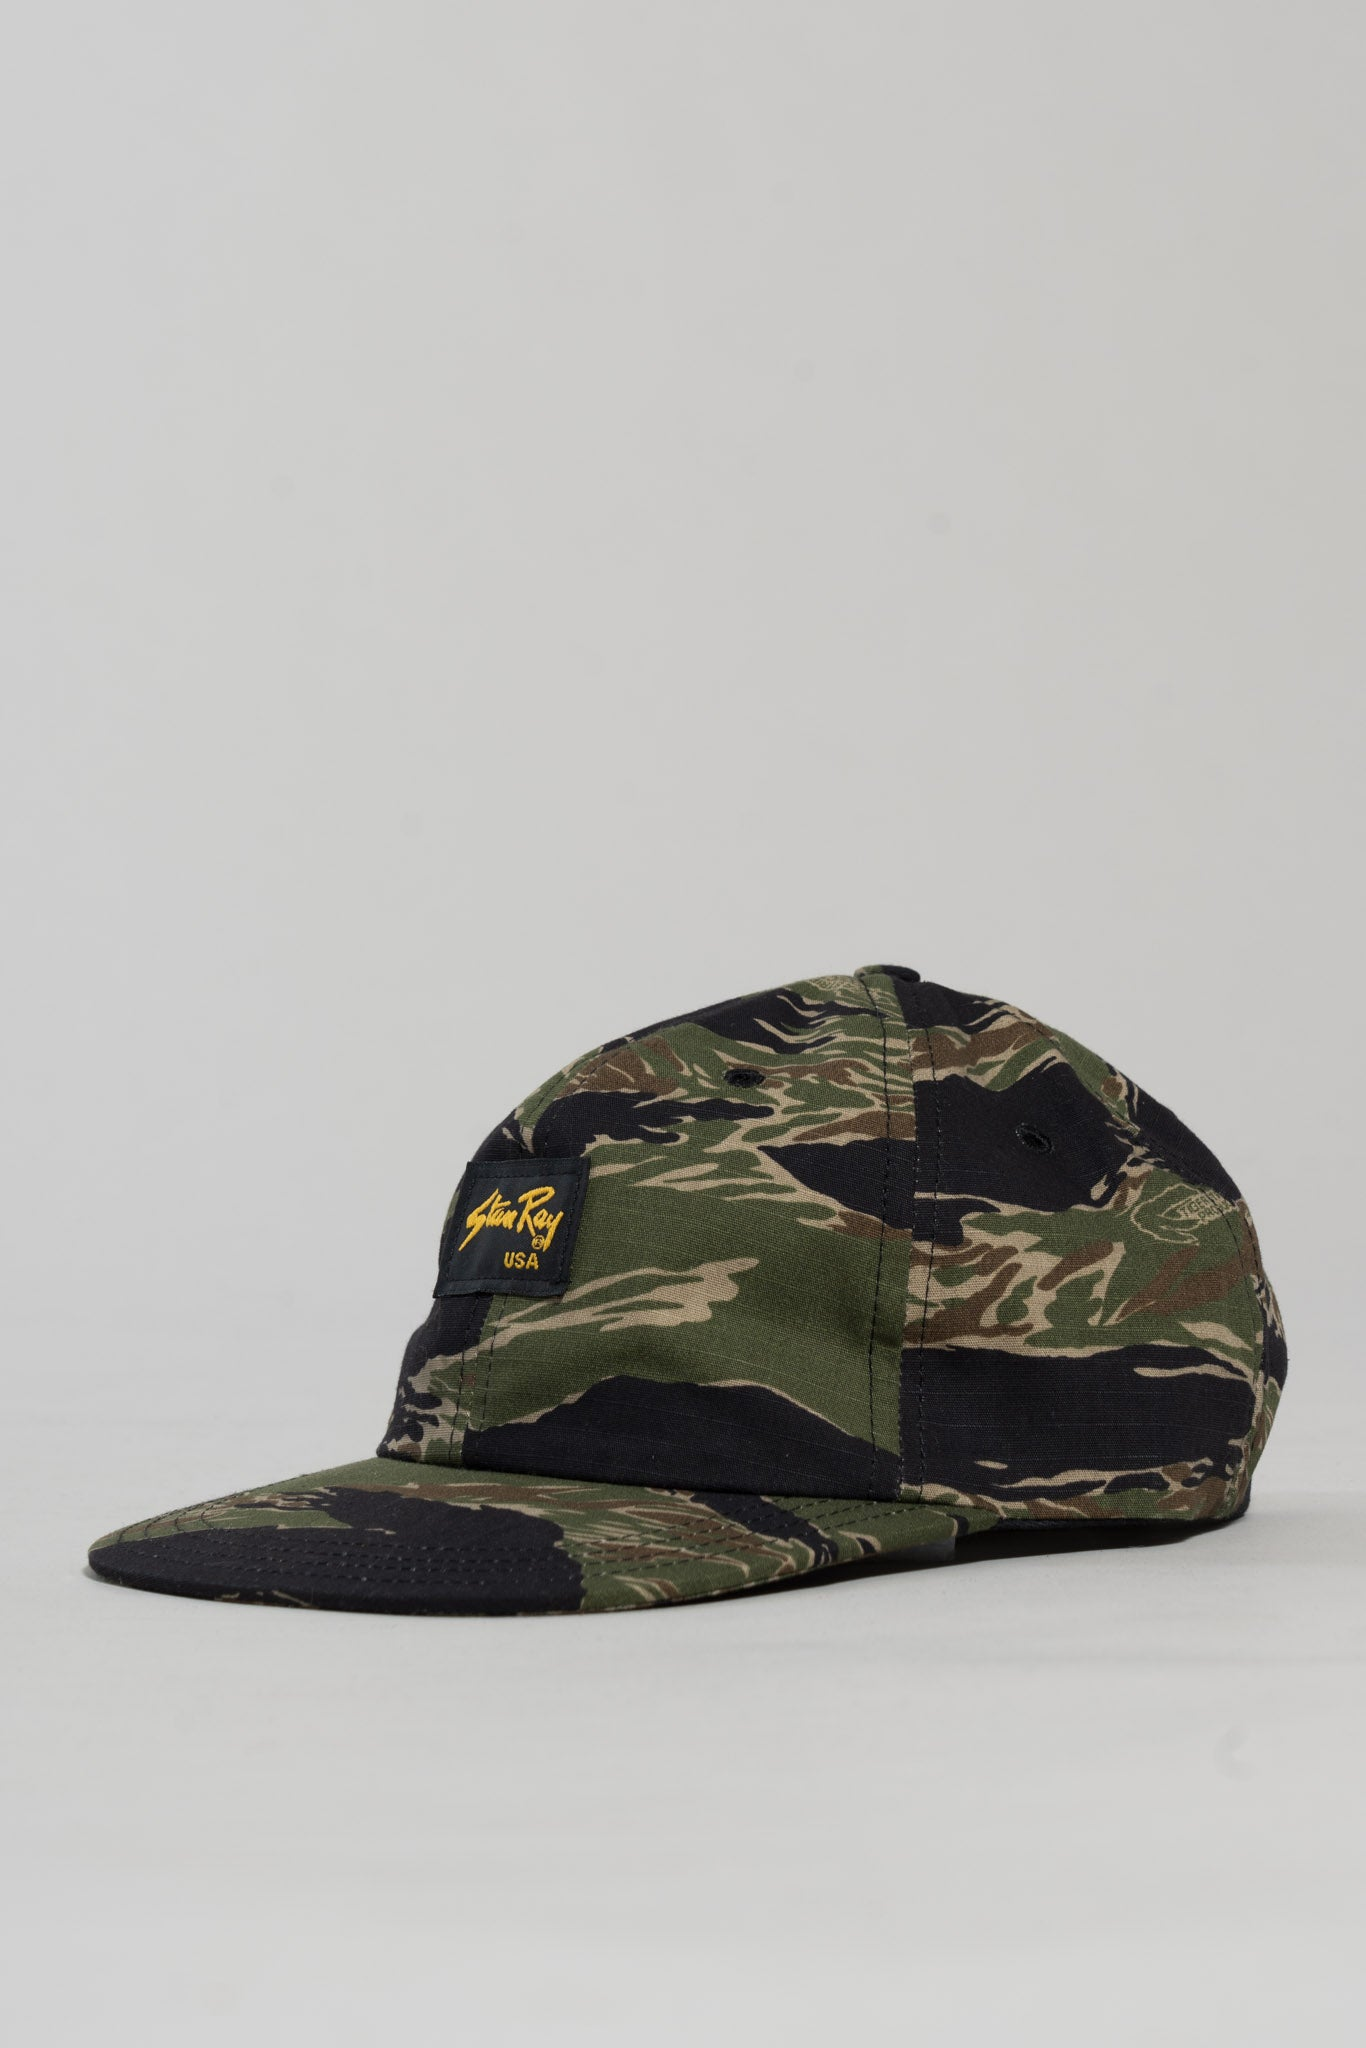 Ball Cap (Green Tigerstripe Ripstop) - Stan Ray